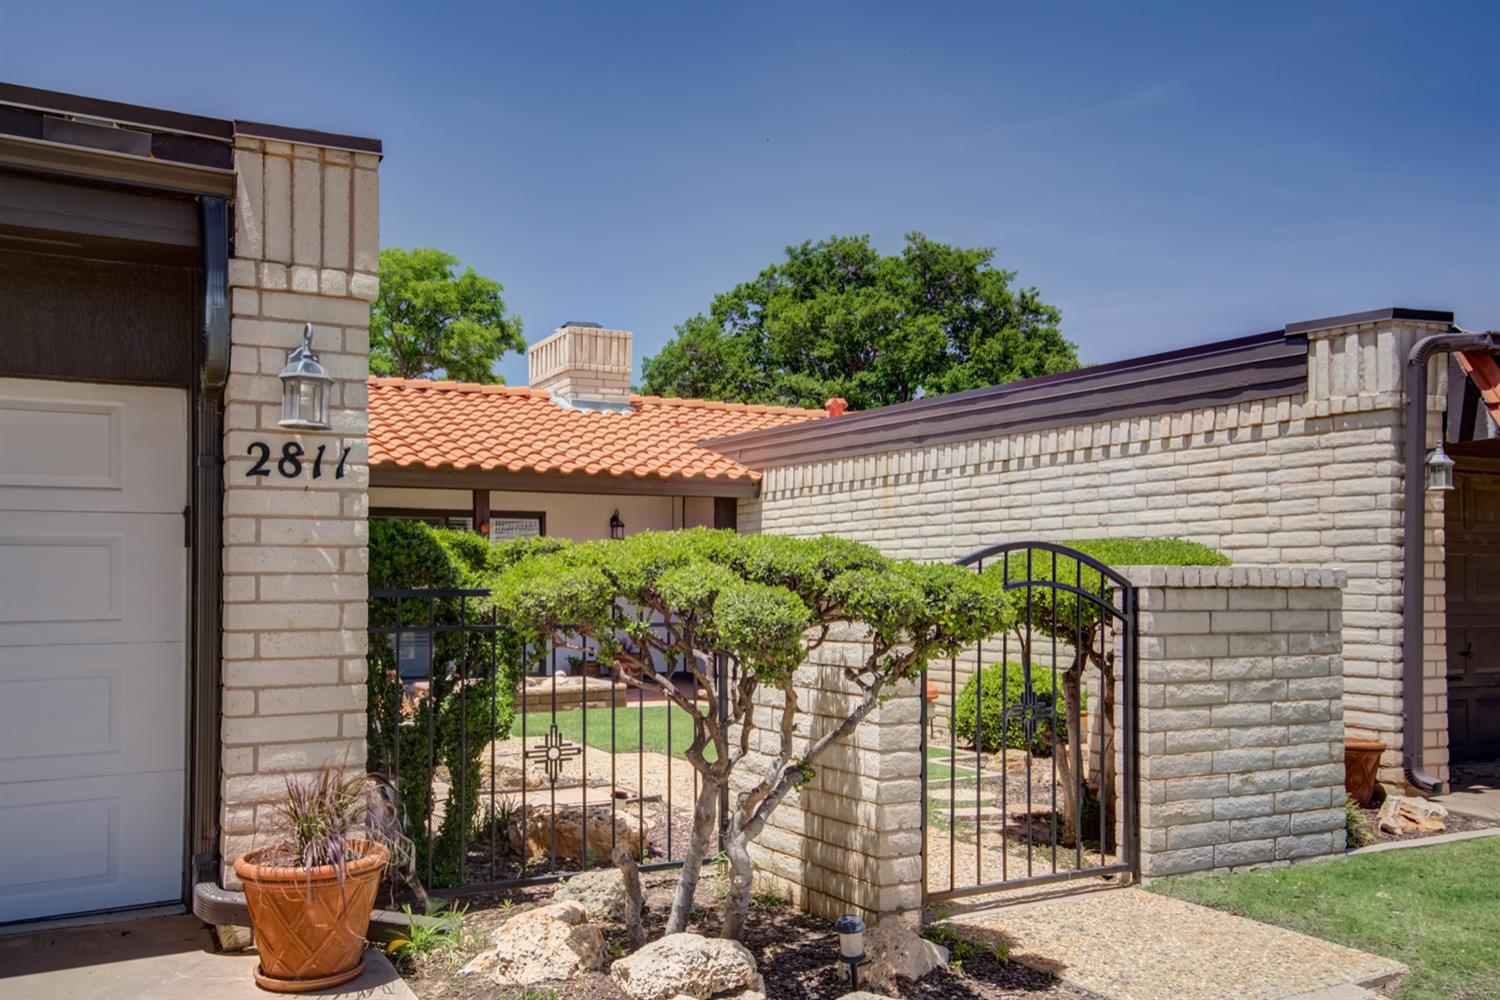 2811 N Meadow Drive, one of homes for sale in Lubbock